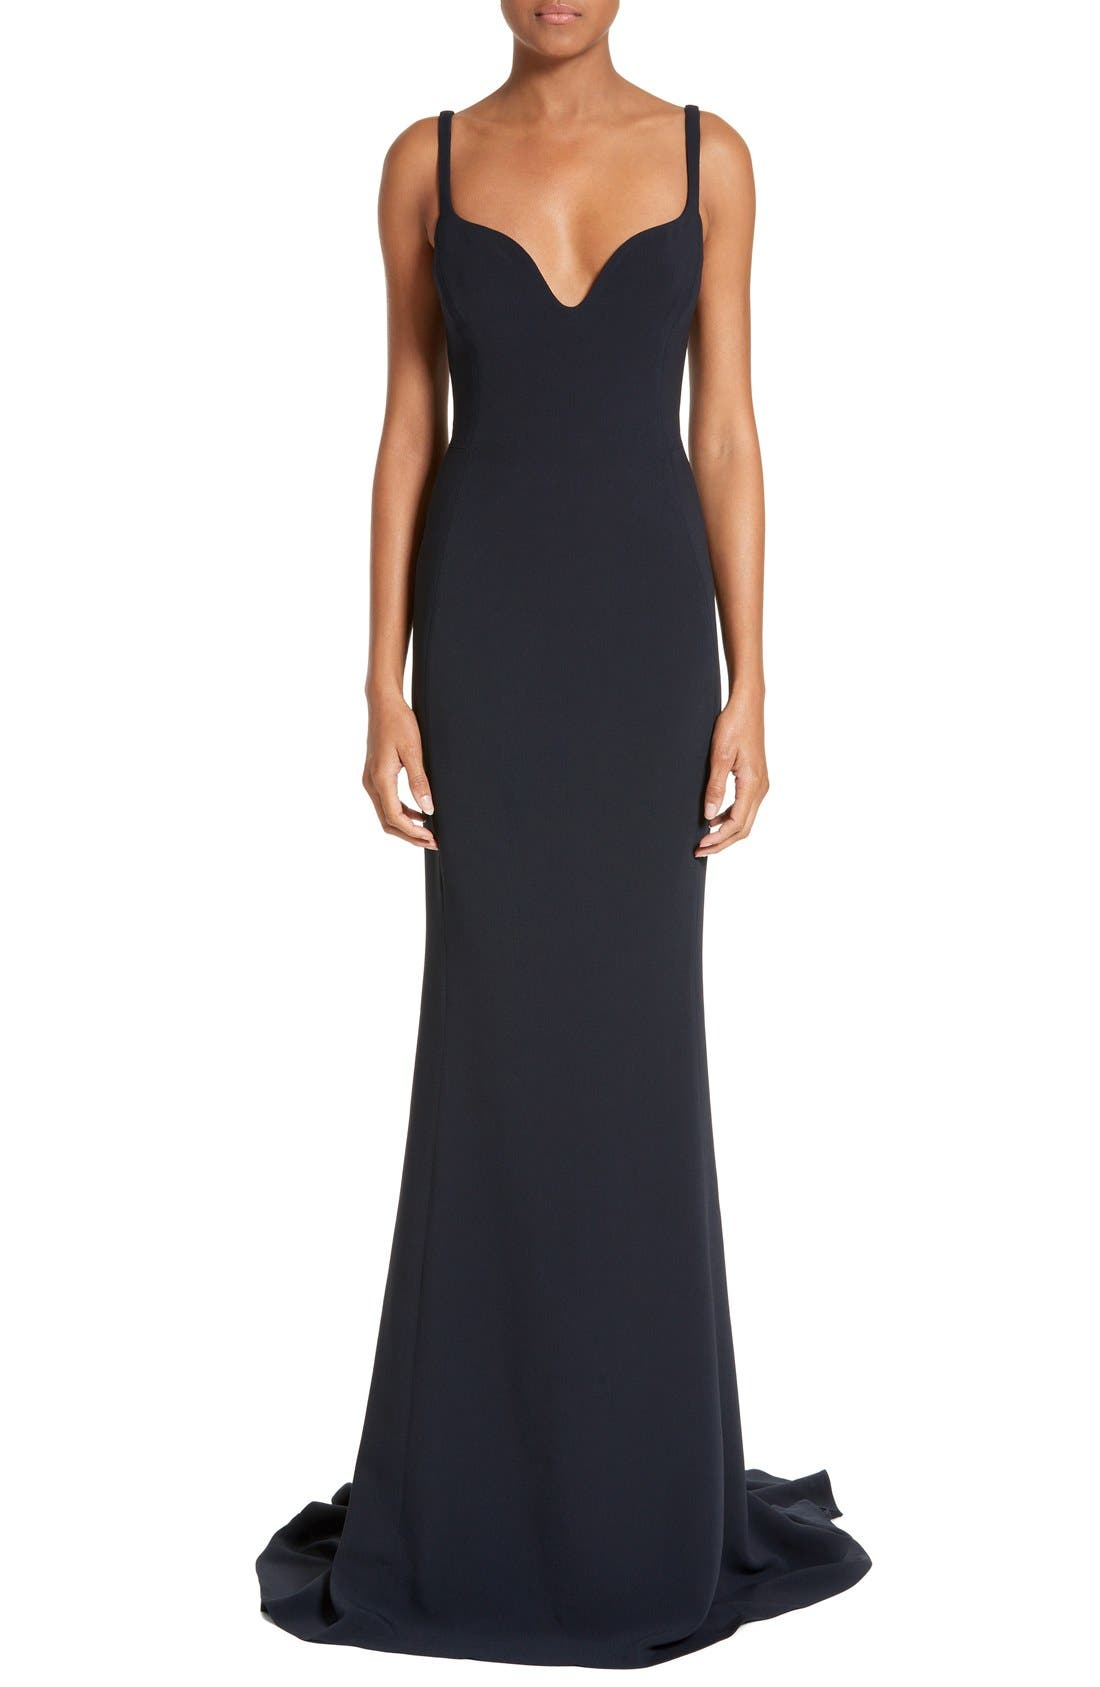 Alternate Image 1 Selected - Stella McCartney Sweetheart Neckline Gown